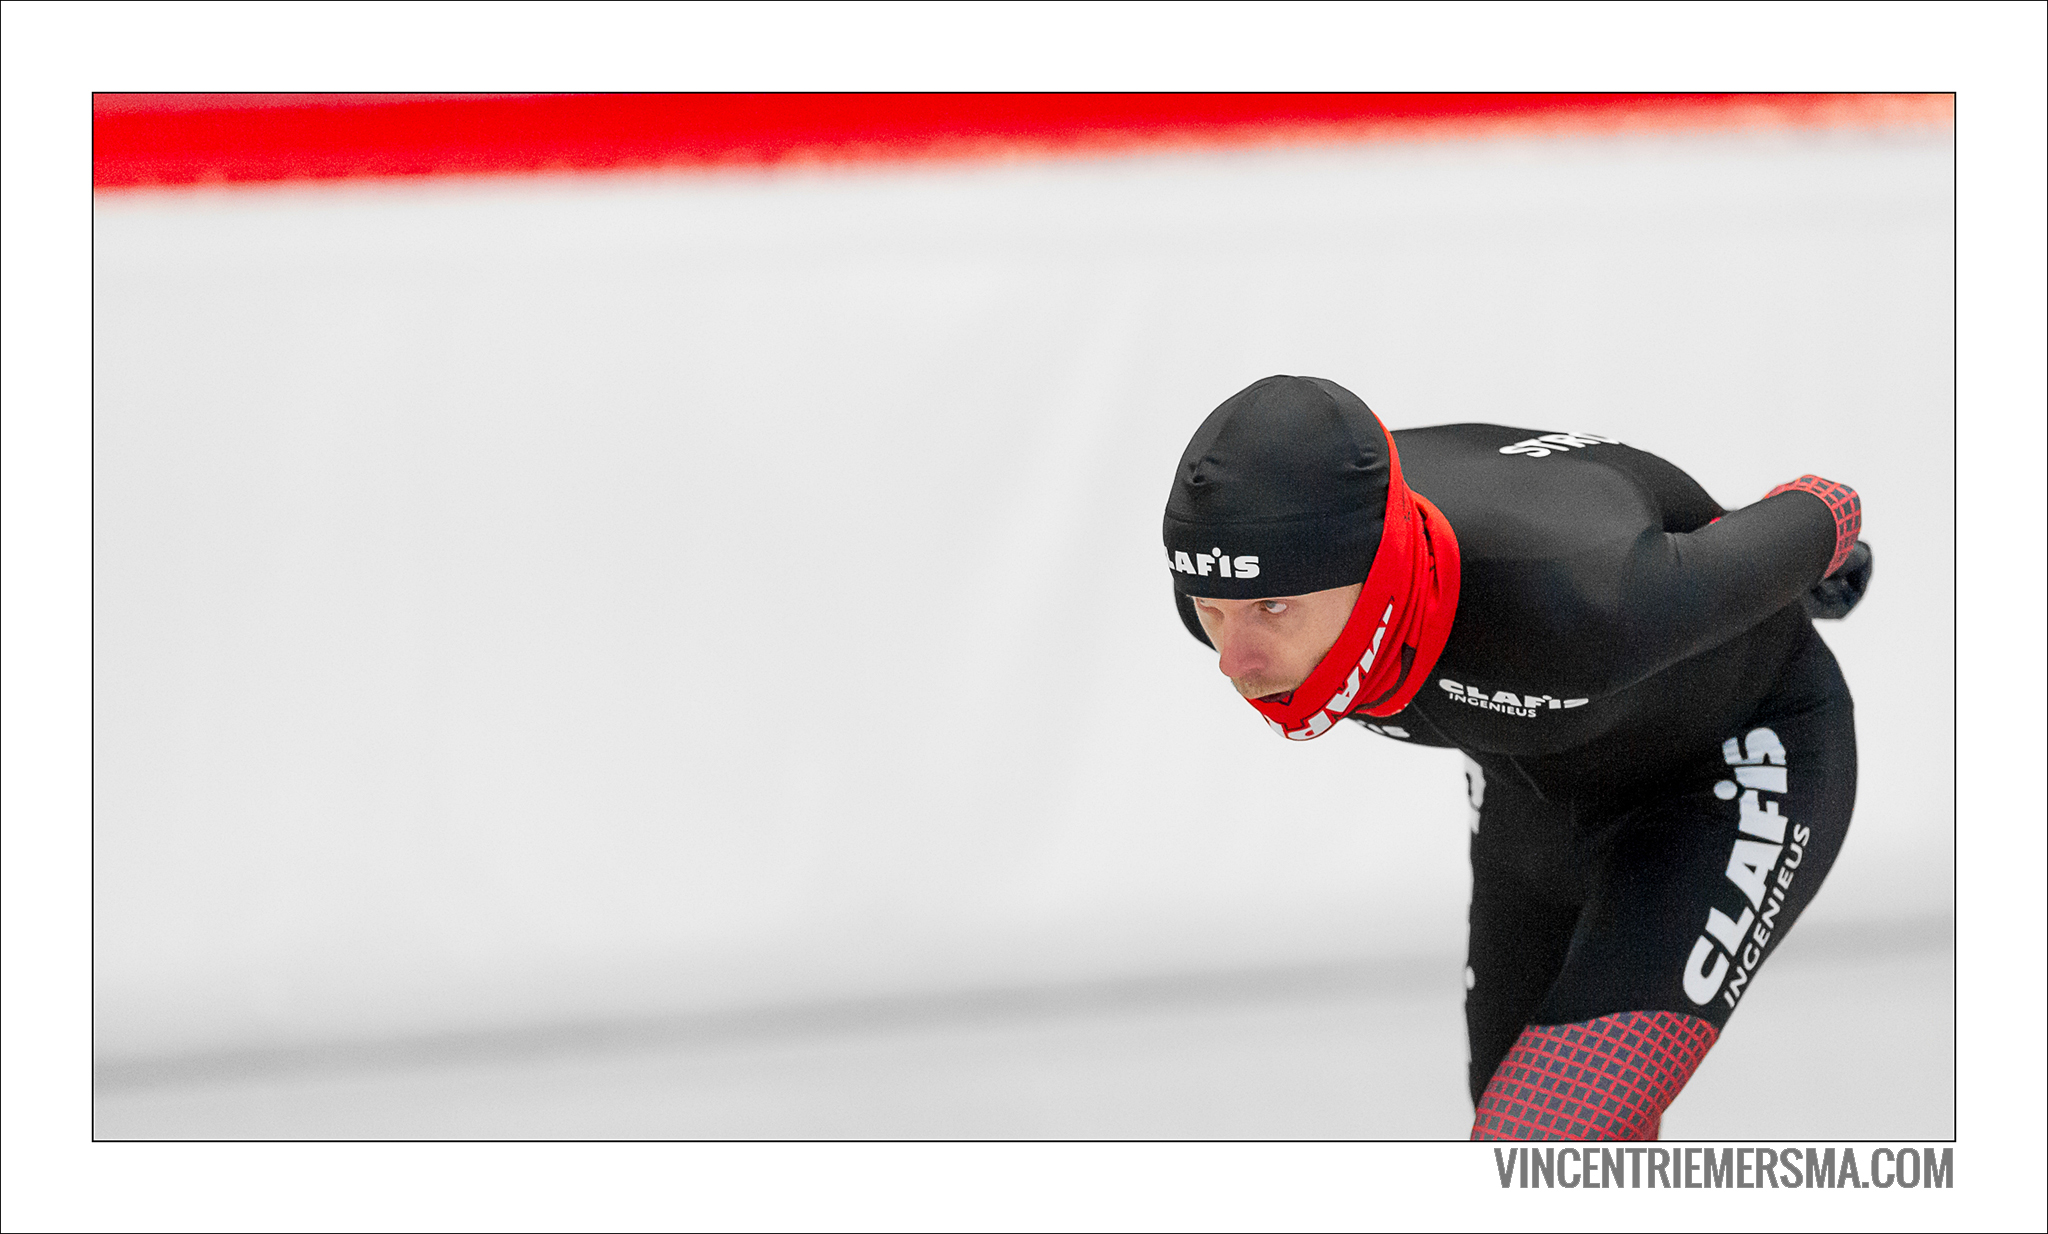 clafis-inzell_20873529206_o.jpg